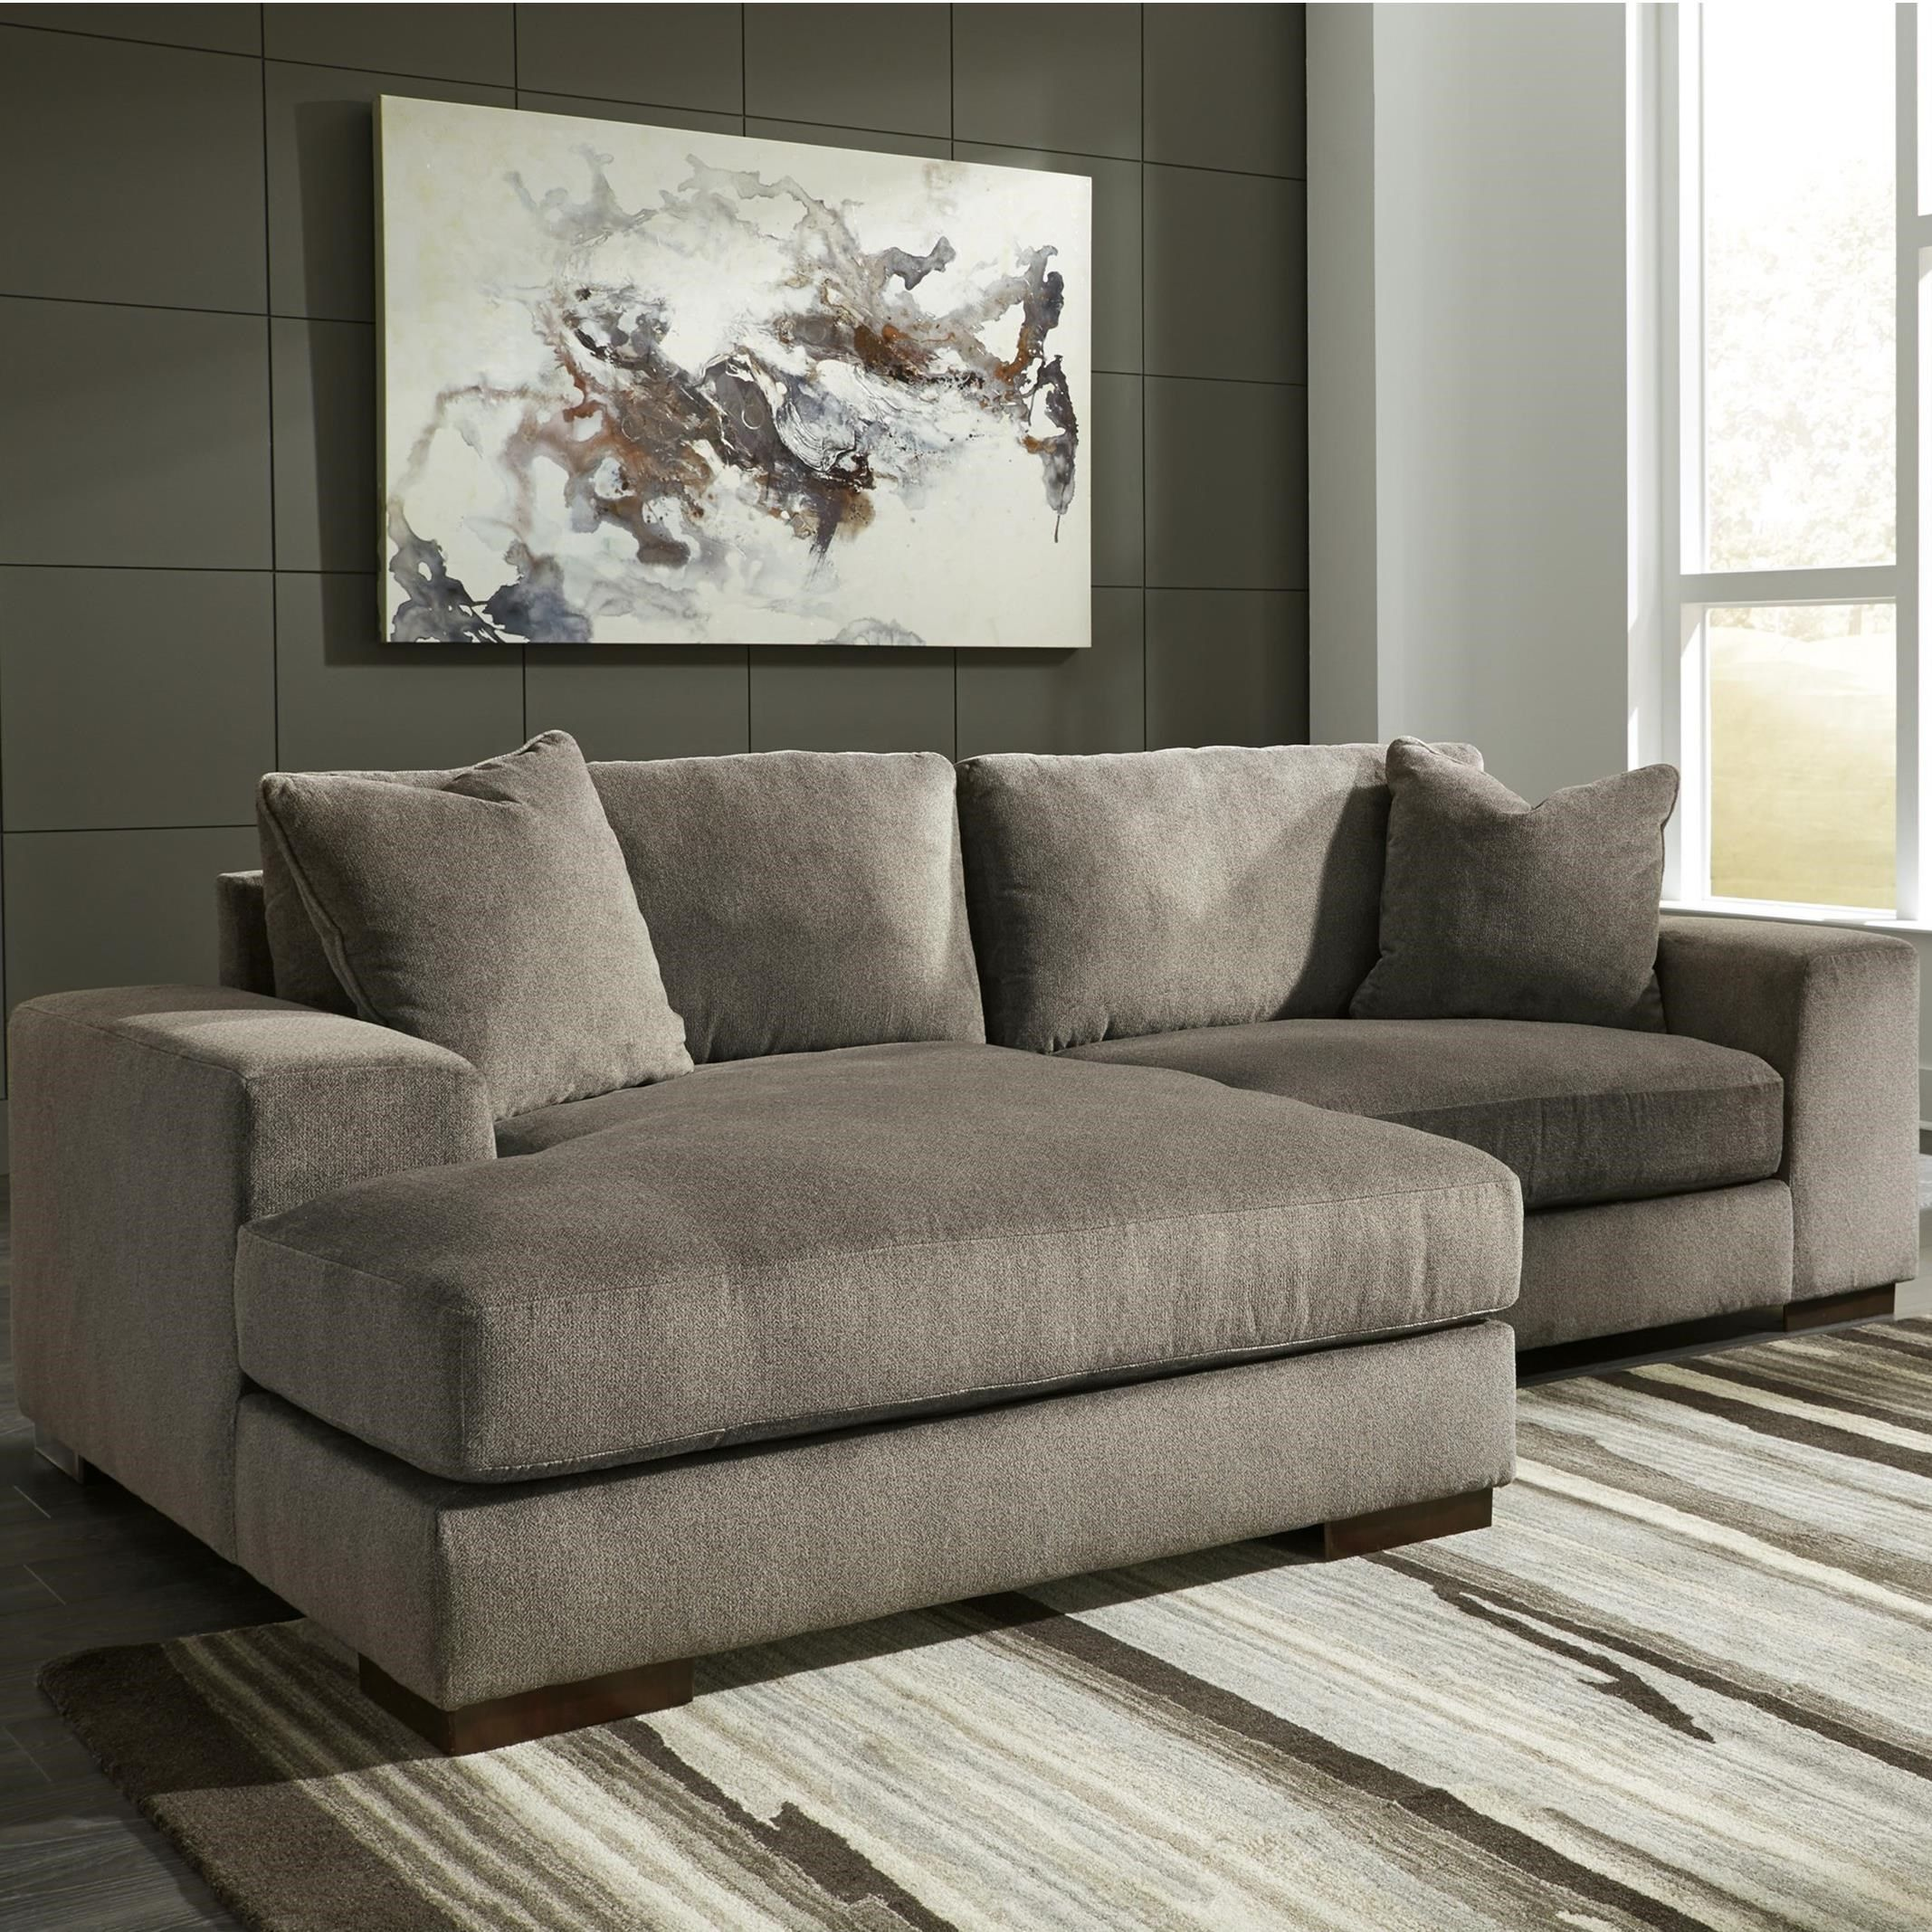 Swell Manzani Contemporary 2 Piece Sectional With Chaise By Uwap Interior Chair Design Uwaporg